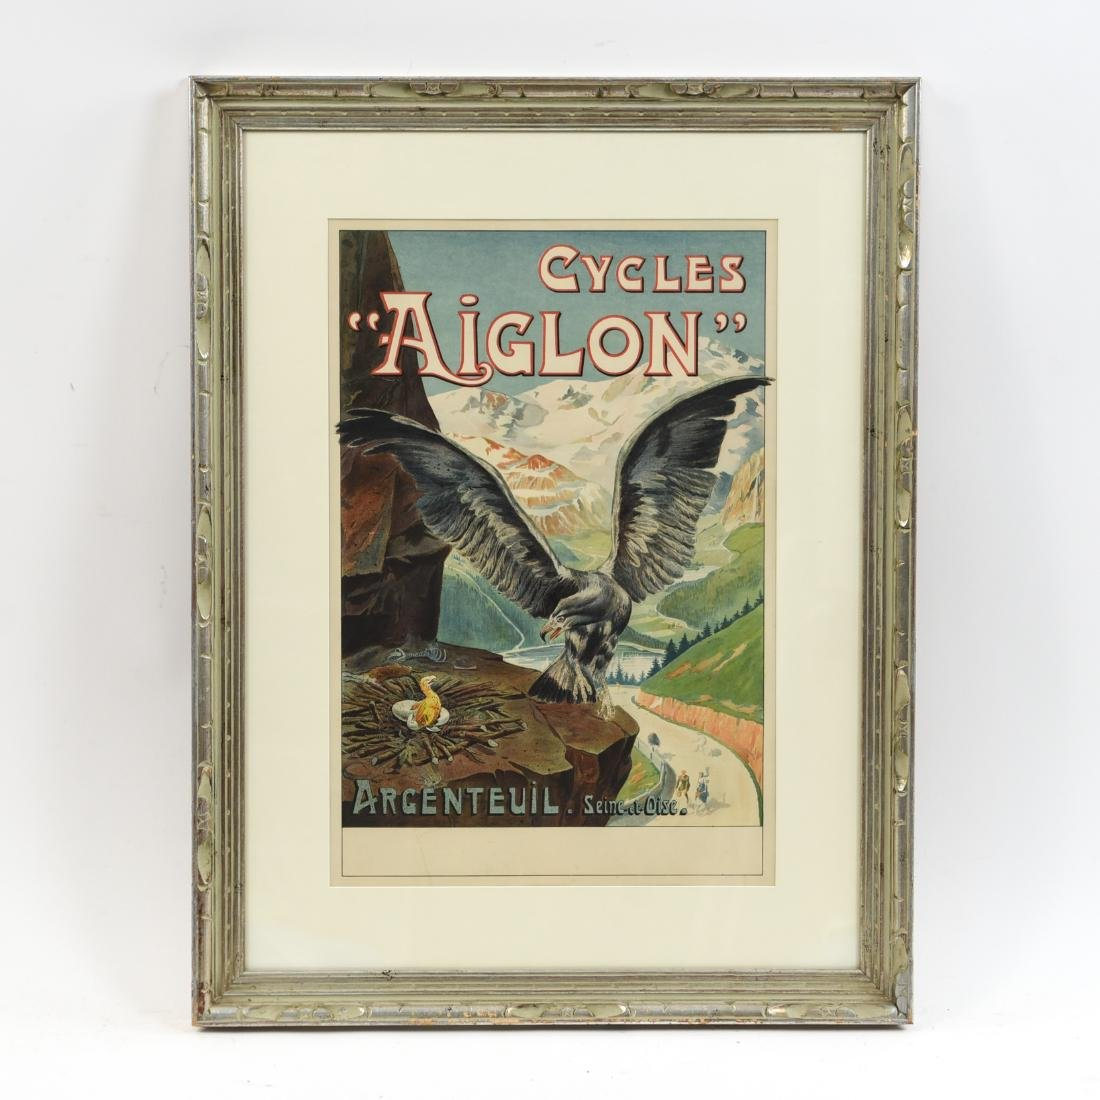 GEORGES VALLE VINTAGE AIGLON BICYCLE POSTER